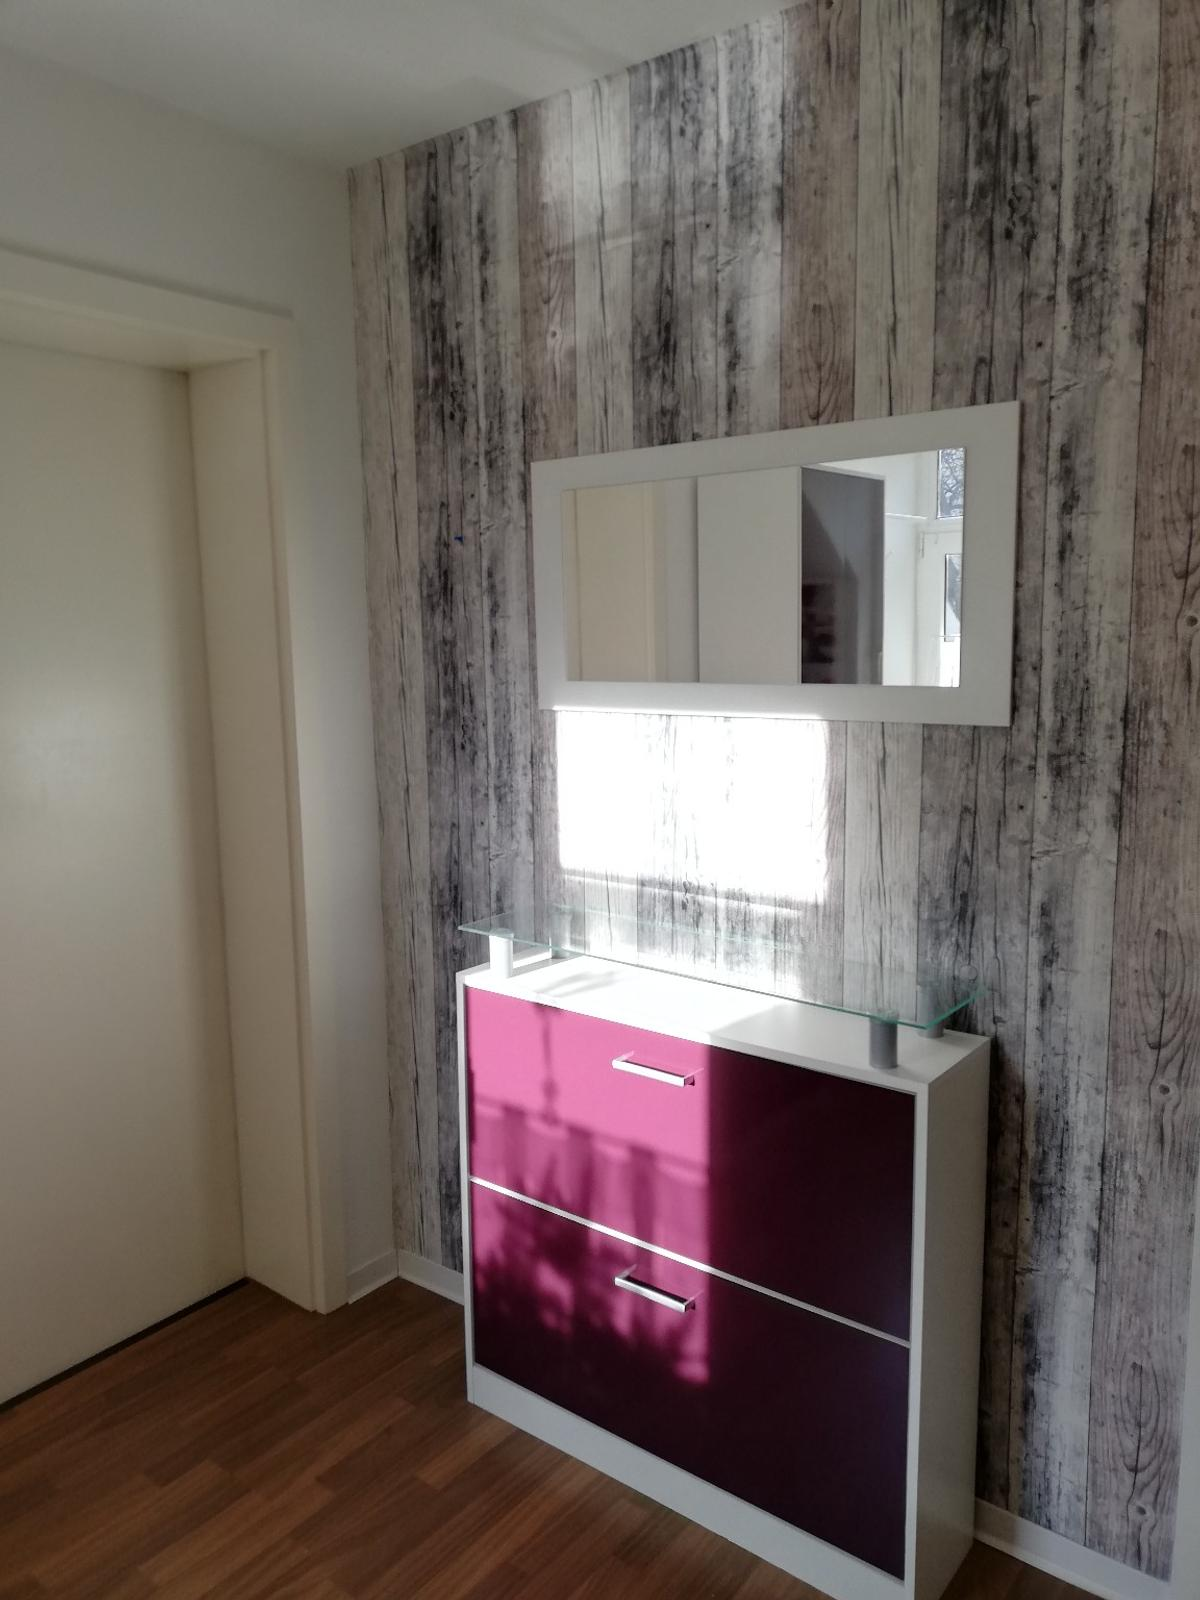 Flur Garderobe In 38855 Wernigerode For 60 00 For Sale Shpock